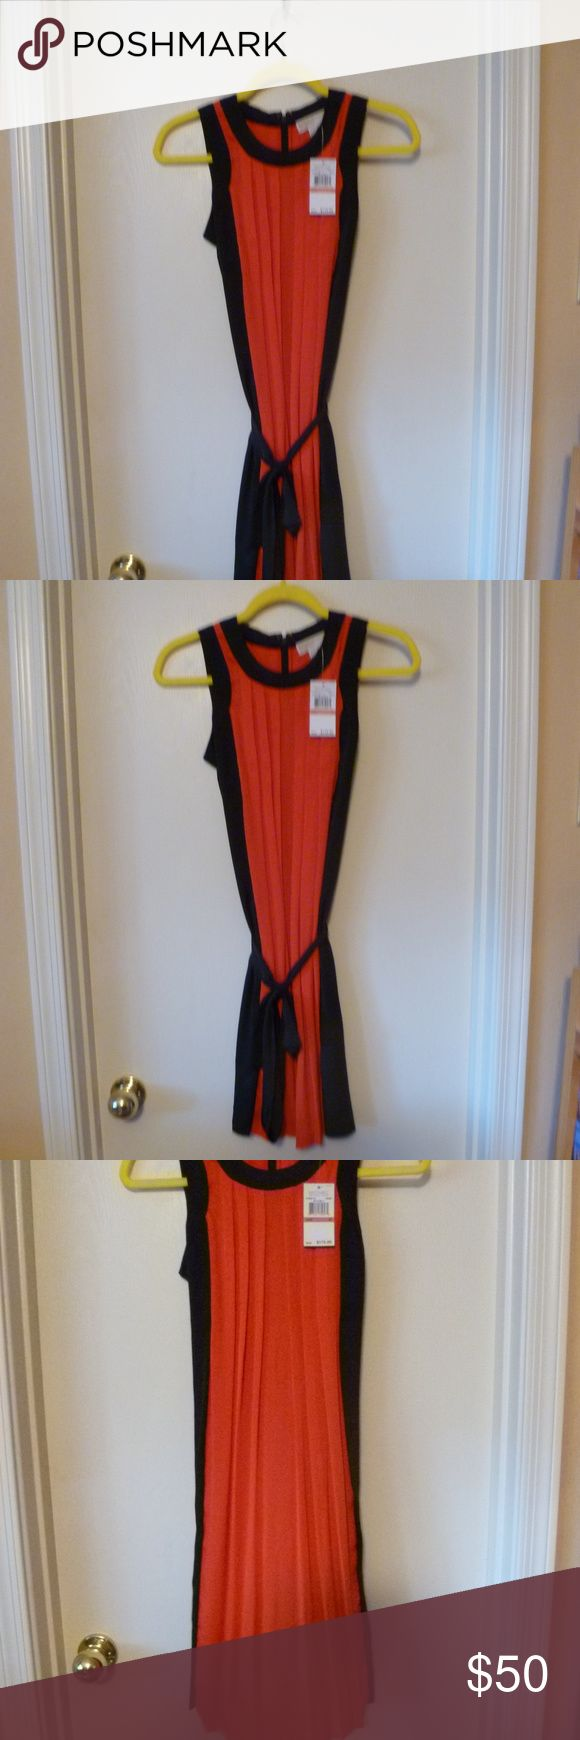 Mickael Kors Petite Dress Cherry NWT Michael Kors size P2 dress.  It's a cherry orange and navy blue.  100% Polyester  Dry clean only.  This is brand new never worn and it's really beautiful. Michael Kors Dresses Midi